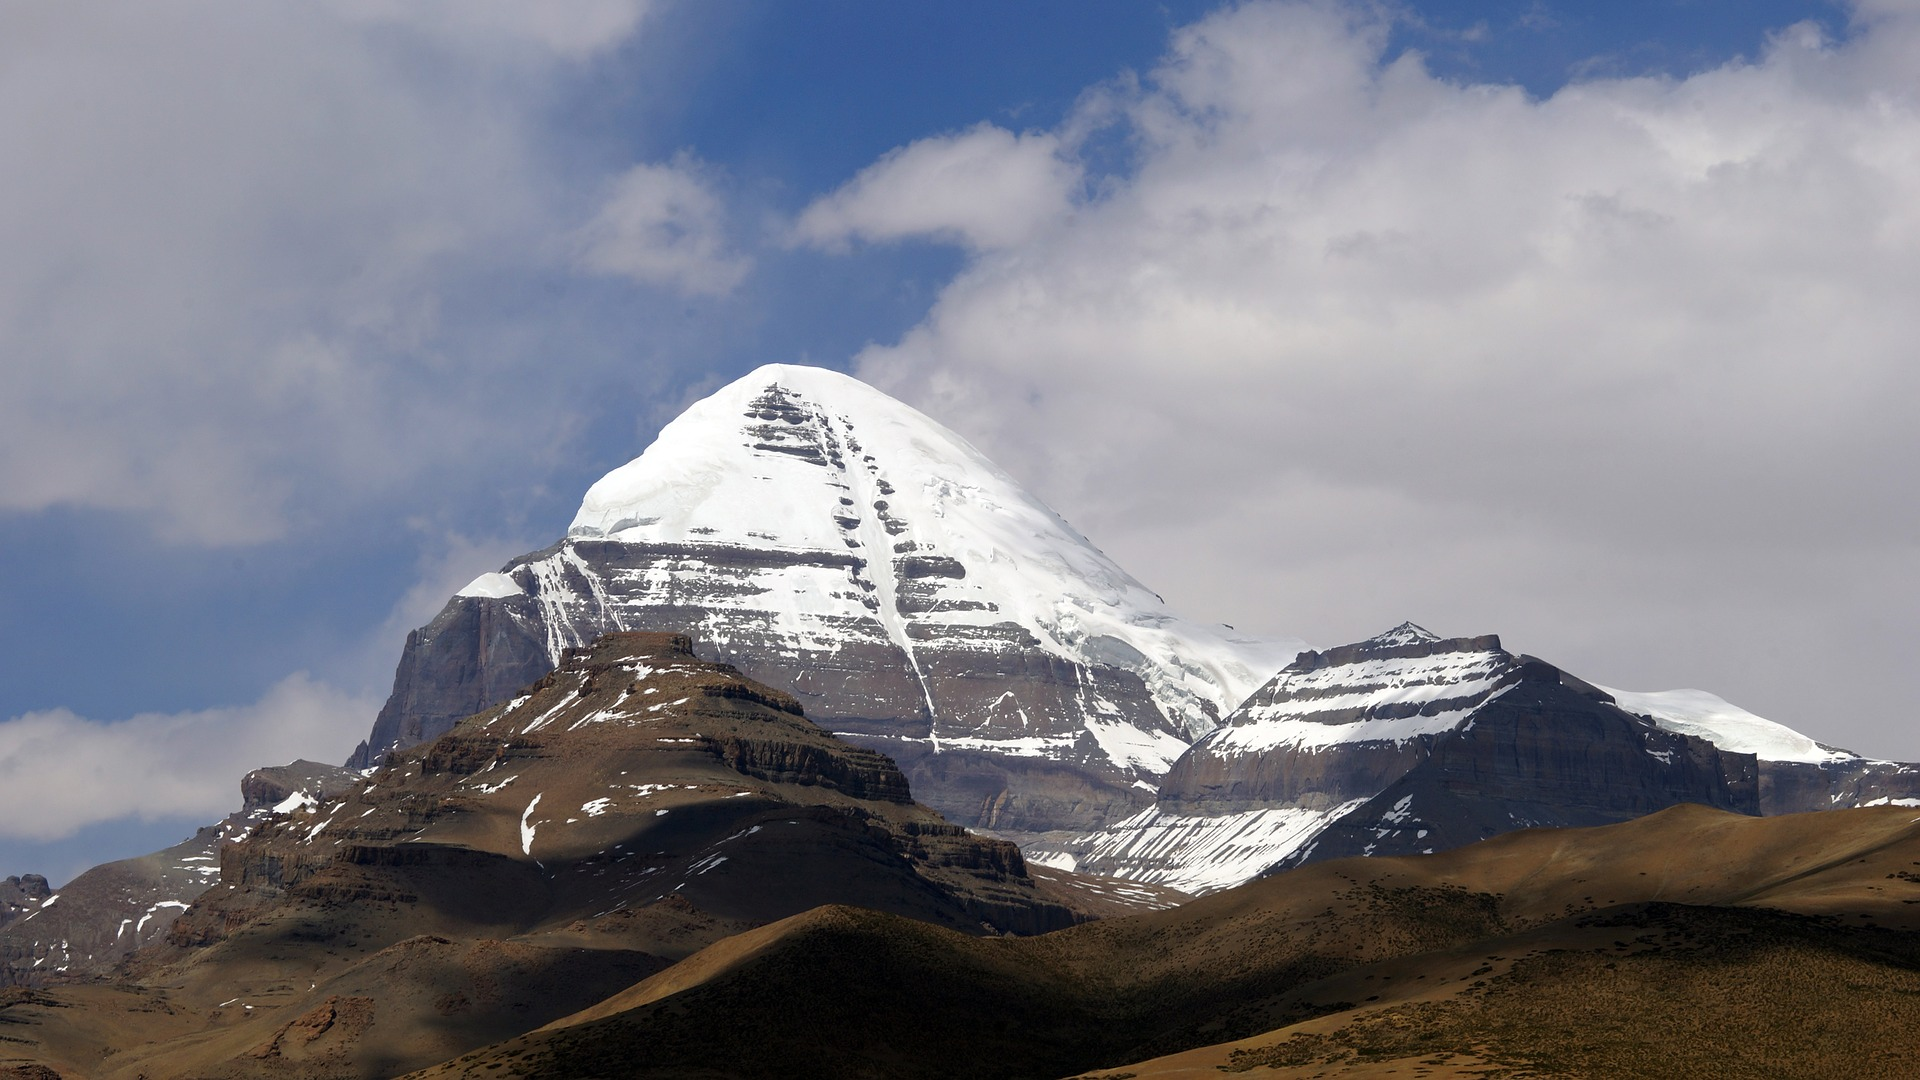 A view of the divine Mount Kailash. Photo: Pixabay